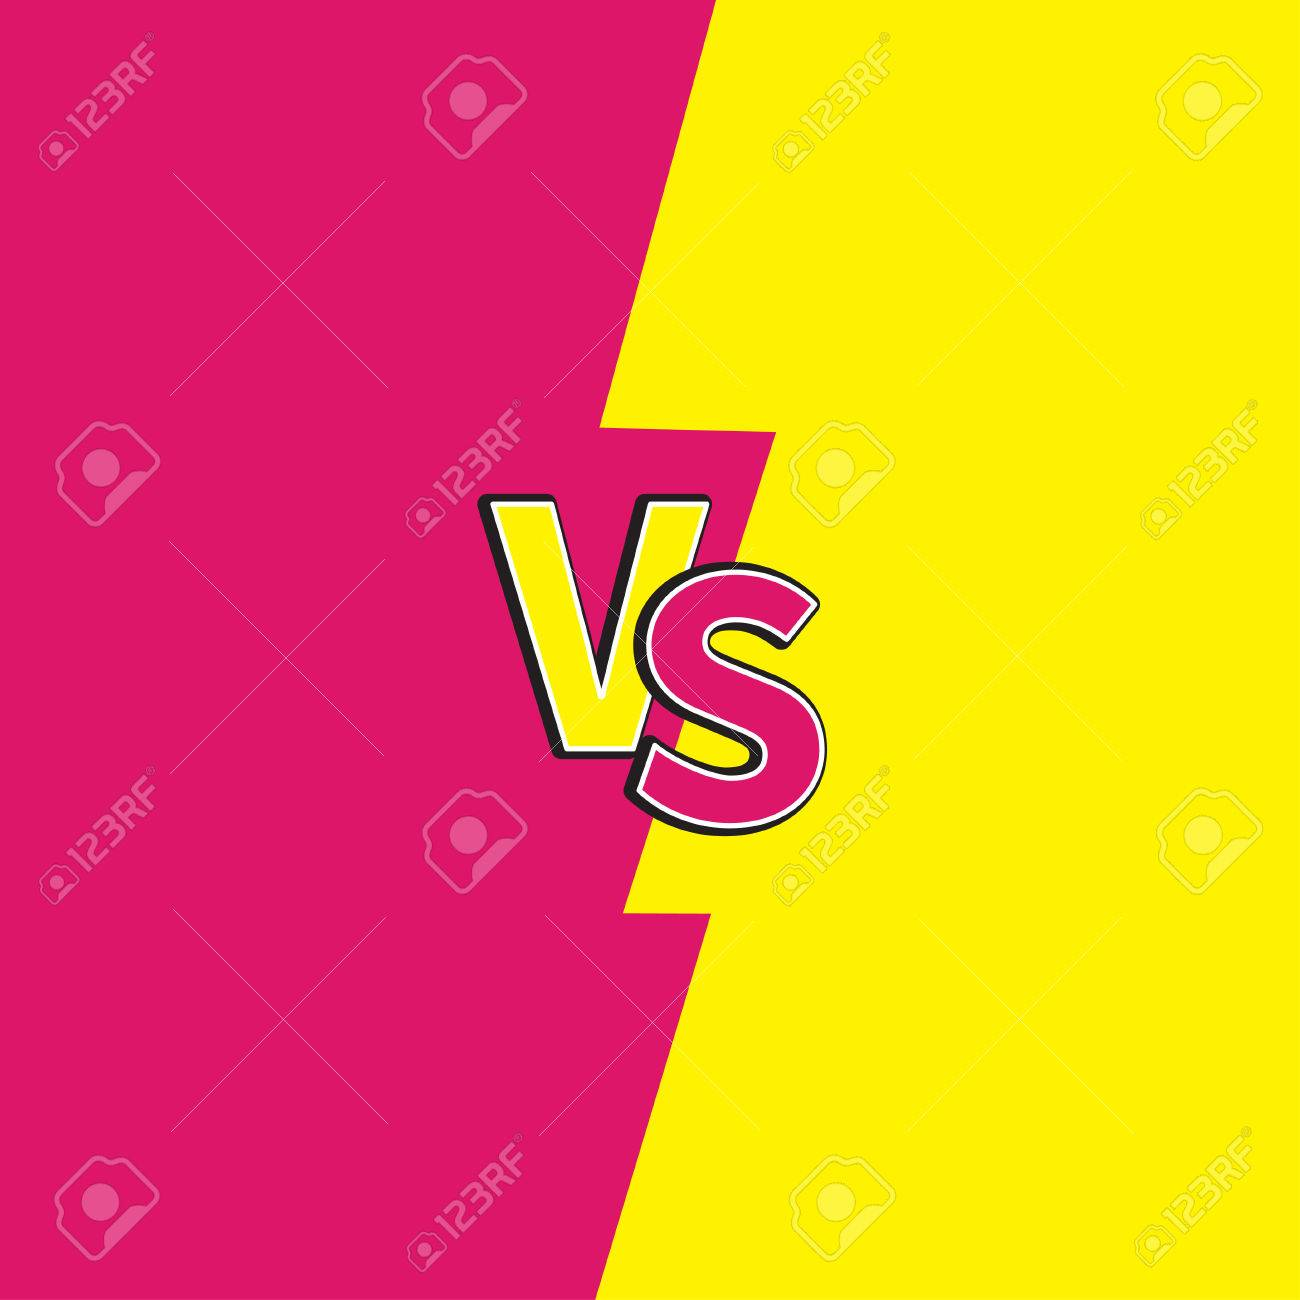 vector versus letters or vs battle fight competition cute cartoon style pink yellow background template flat design vector illustration